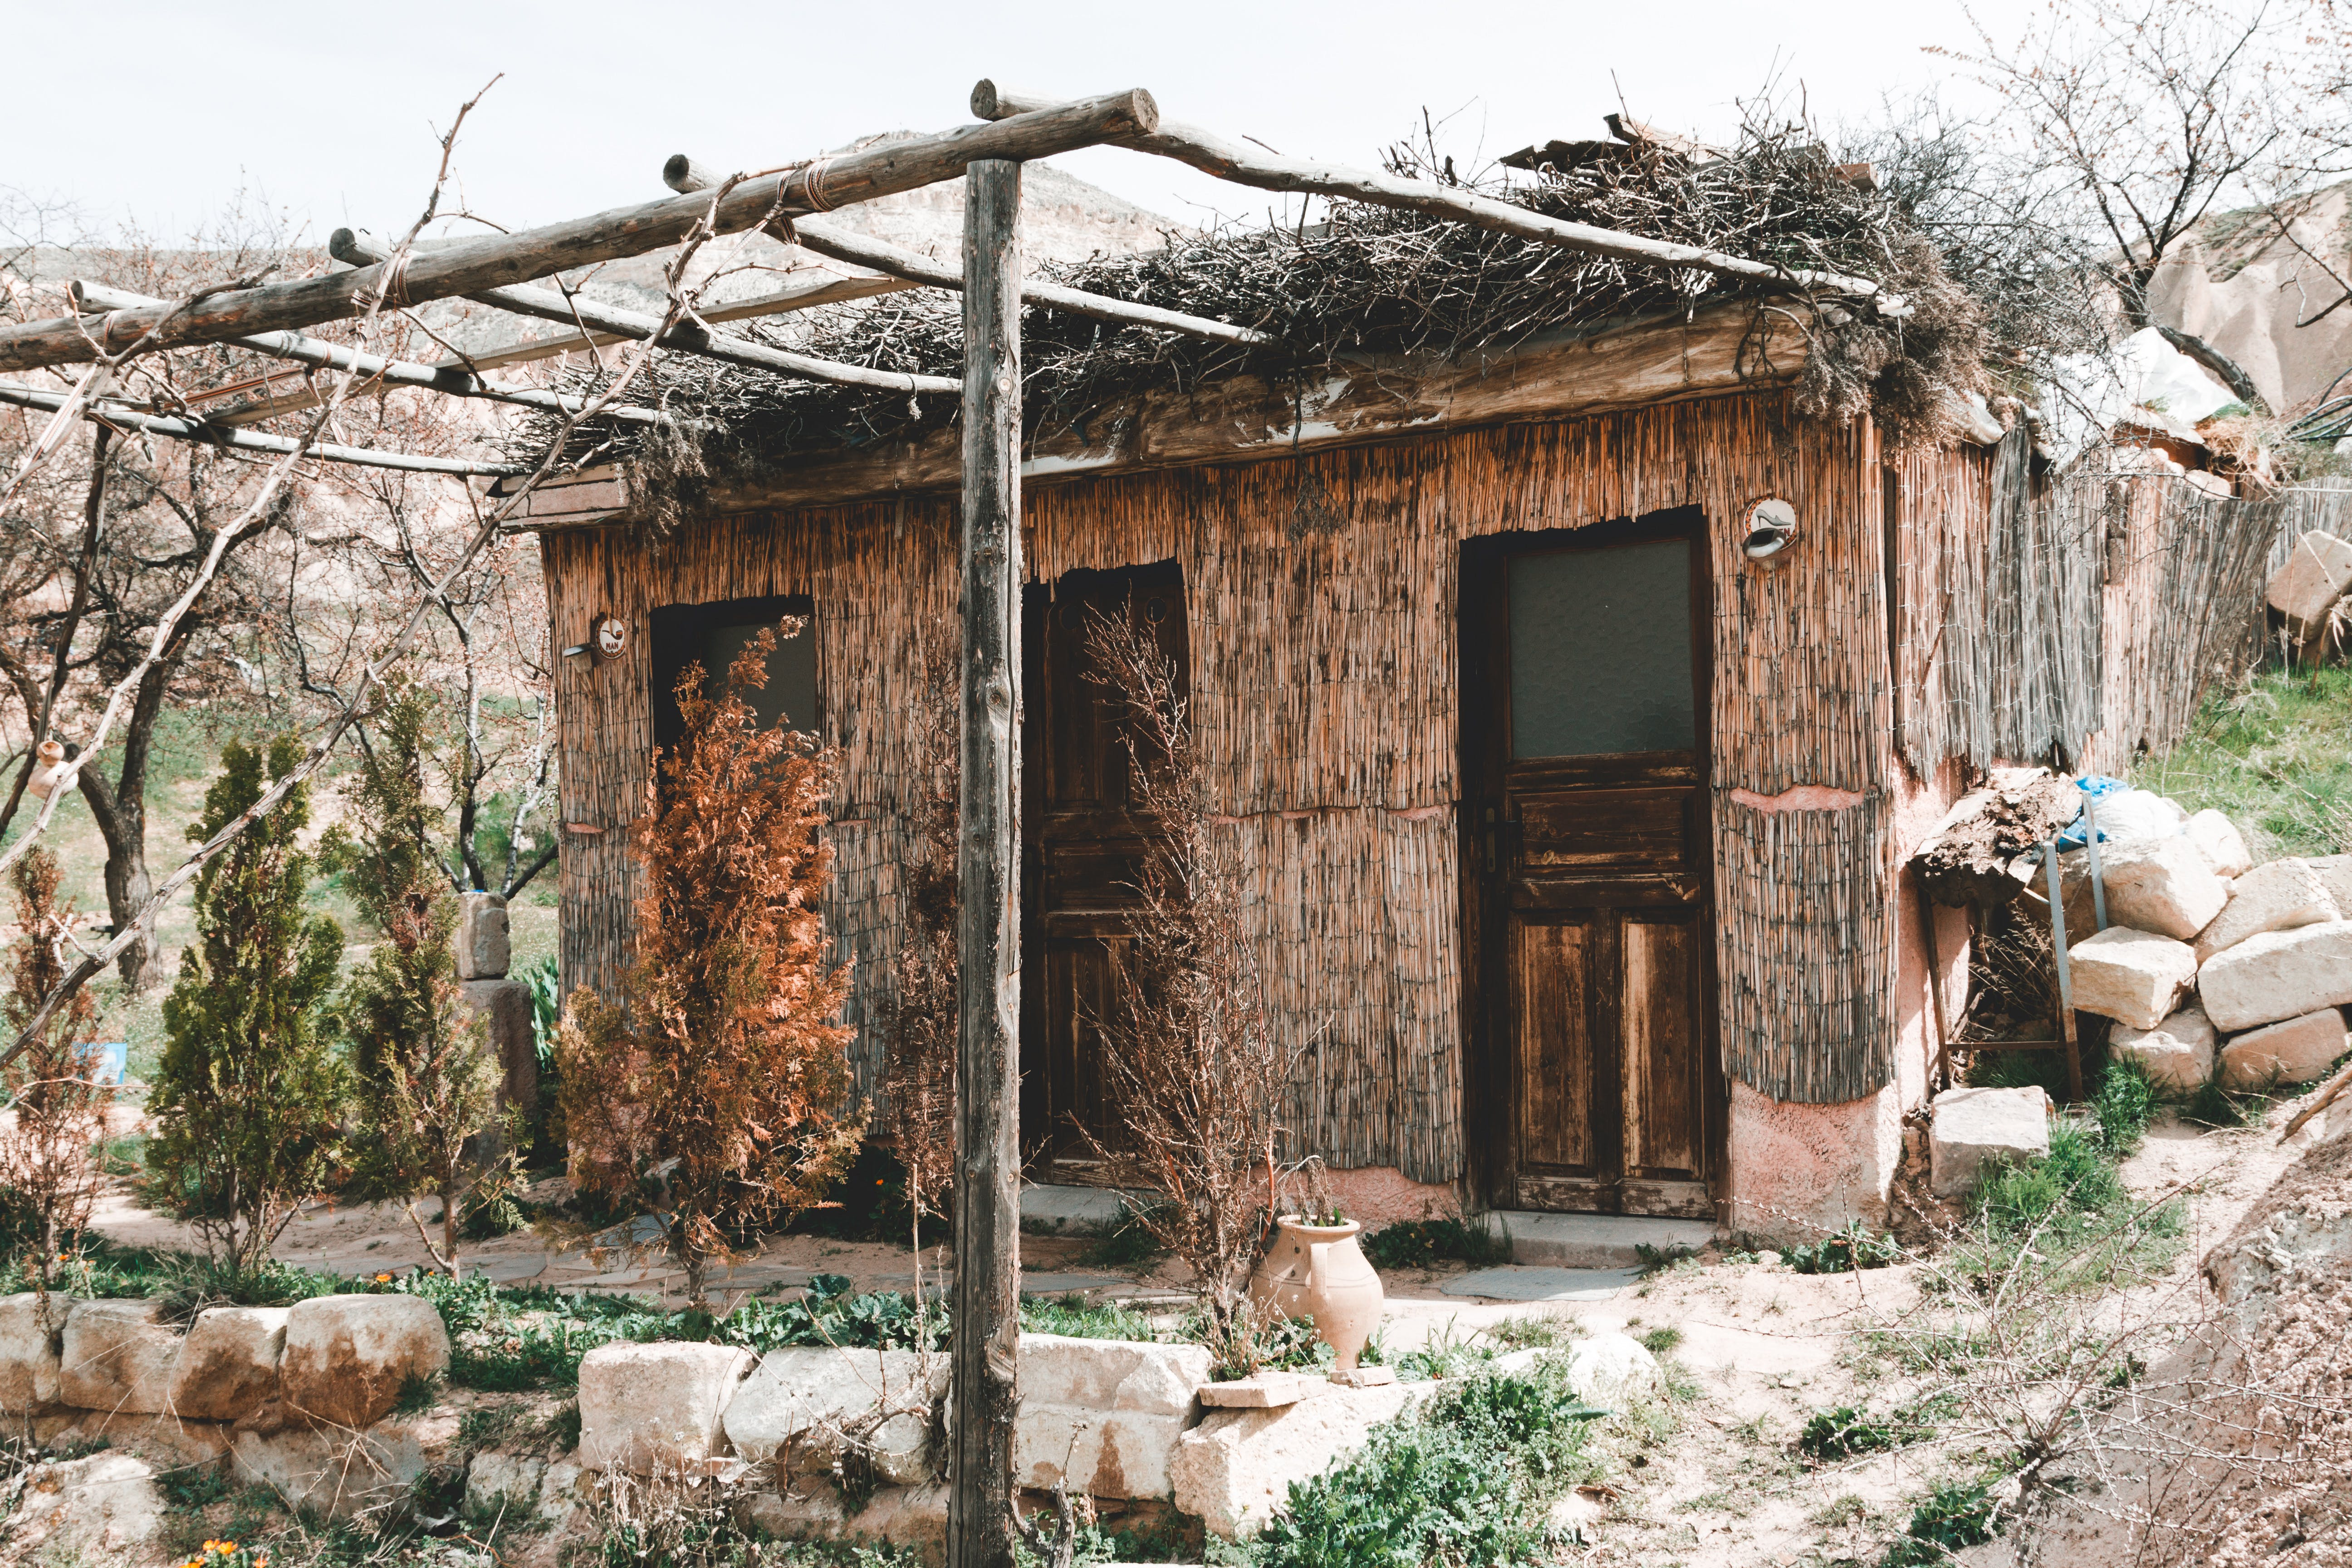 Photograph of a Wooden Shabby House